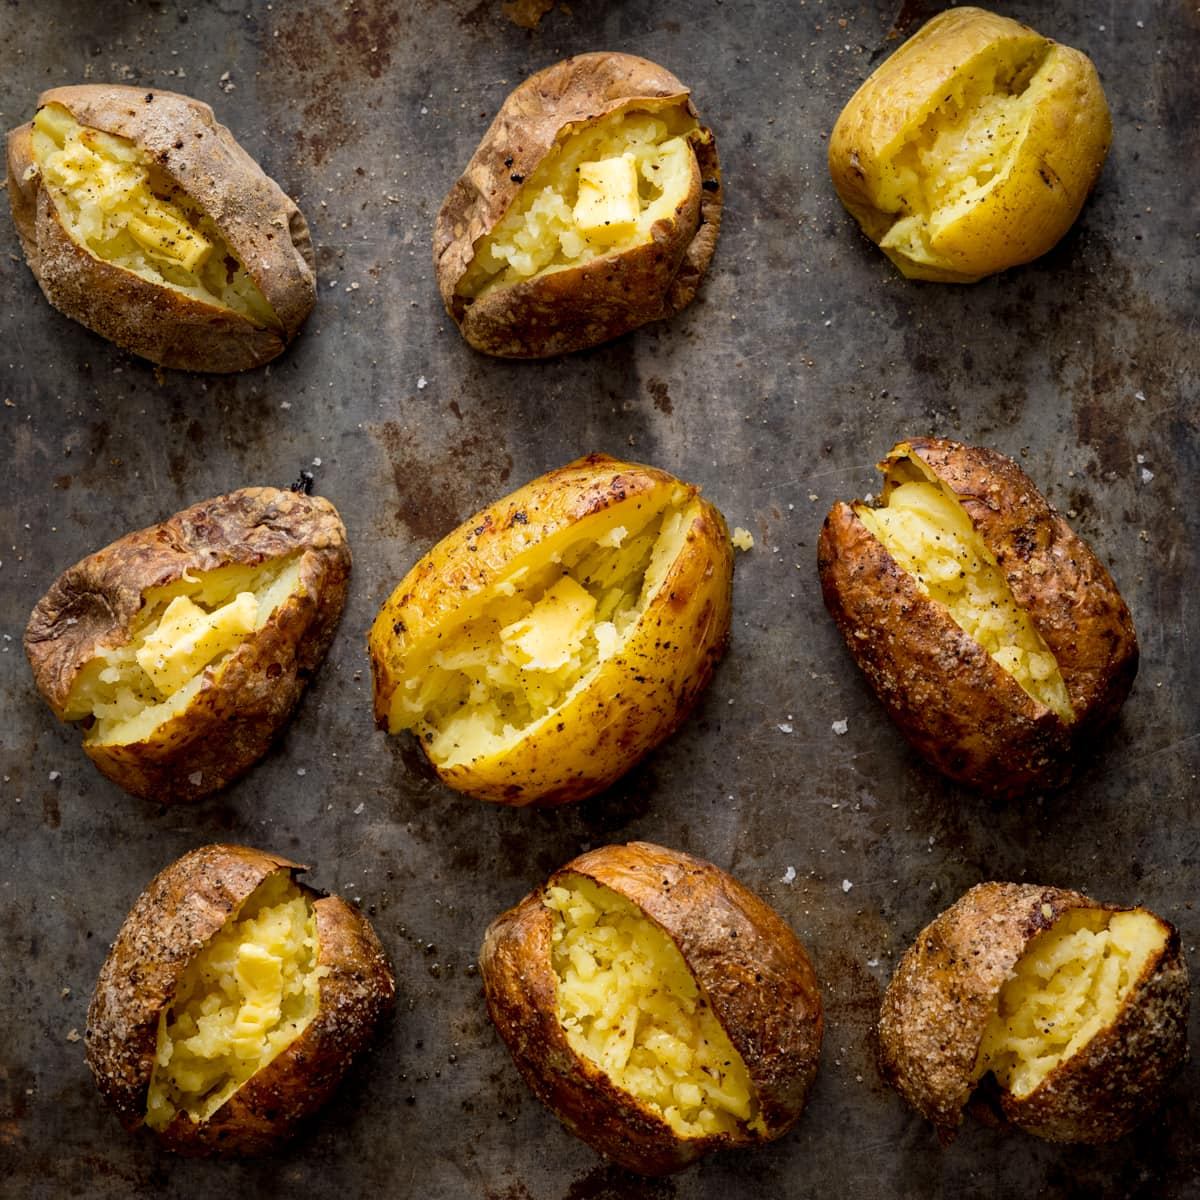 Square image showing 9 baked potatoes on a metal tray.